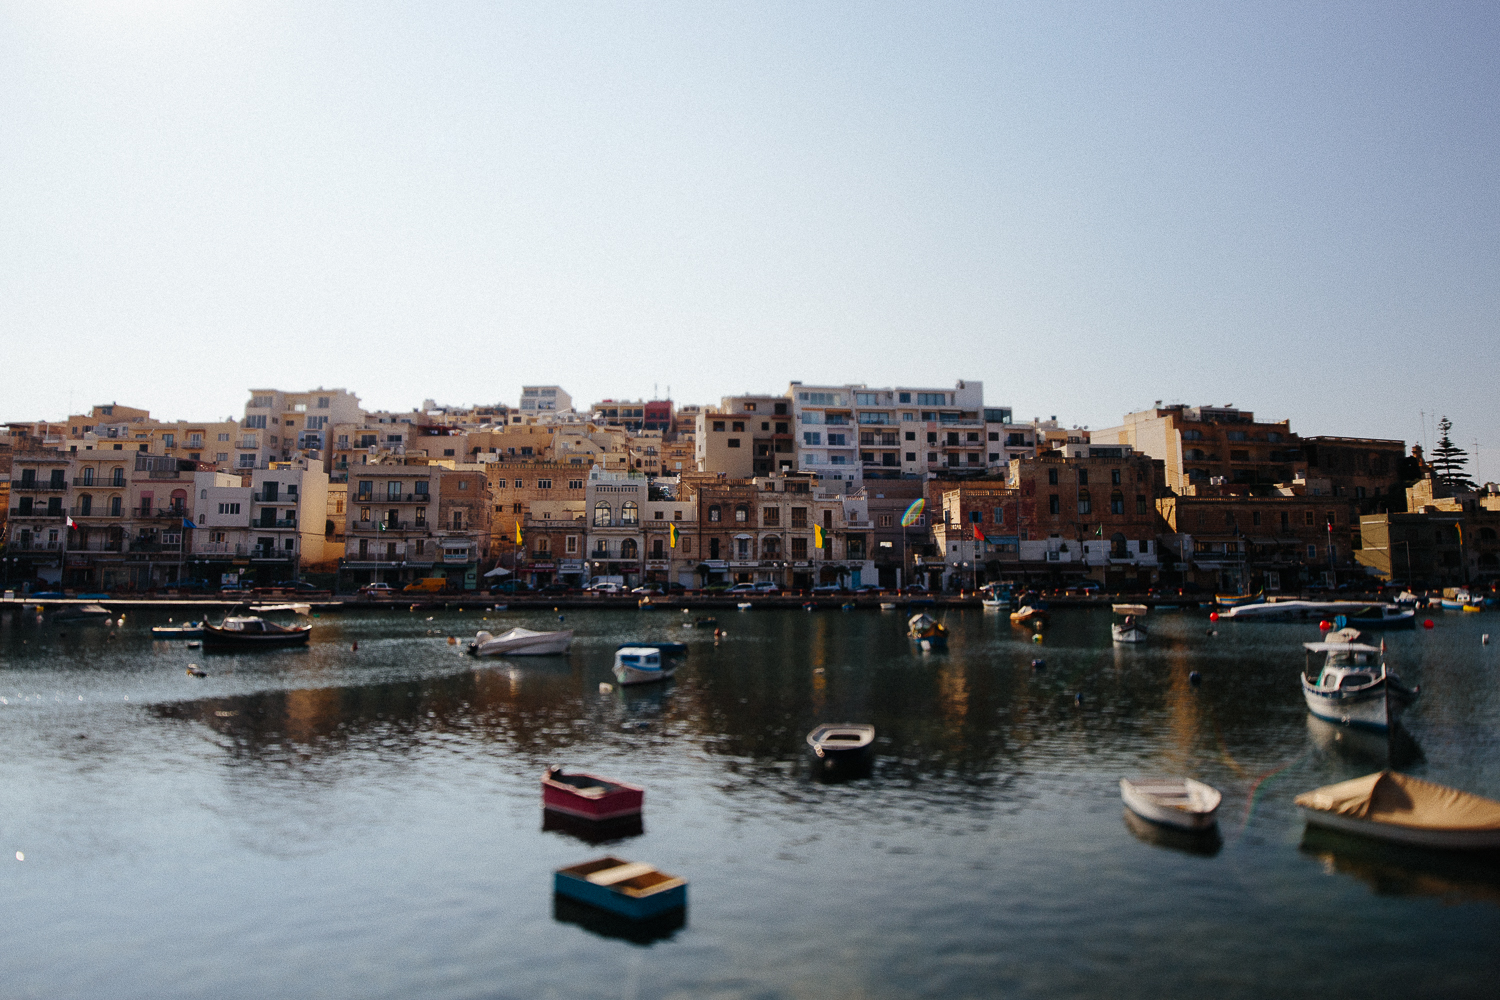 marsaskala-photography.jpg